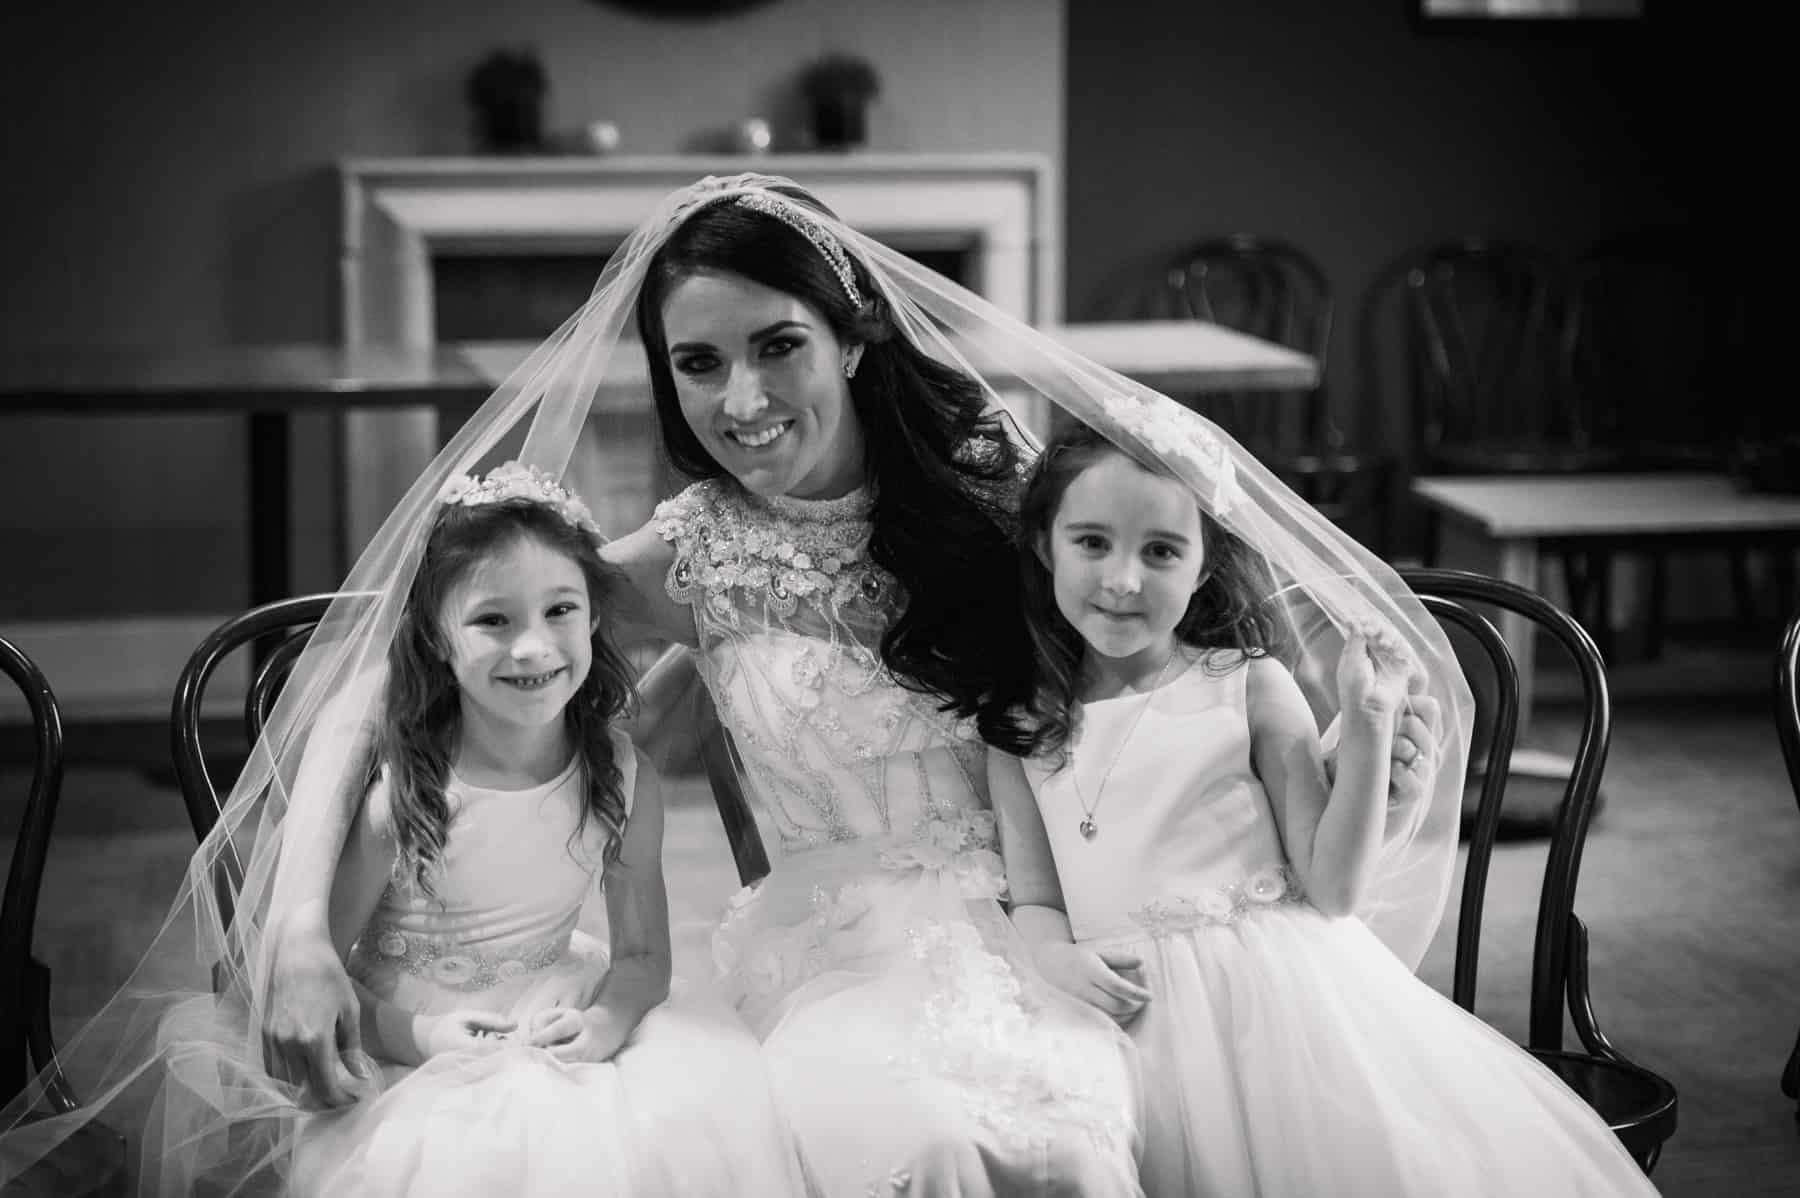 wedding photography bride and bridesmaids (1 of 1)